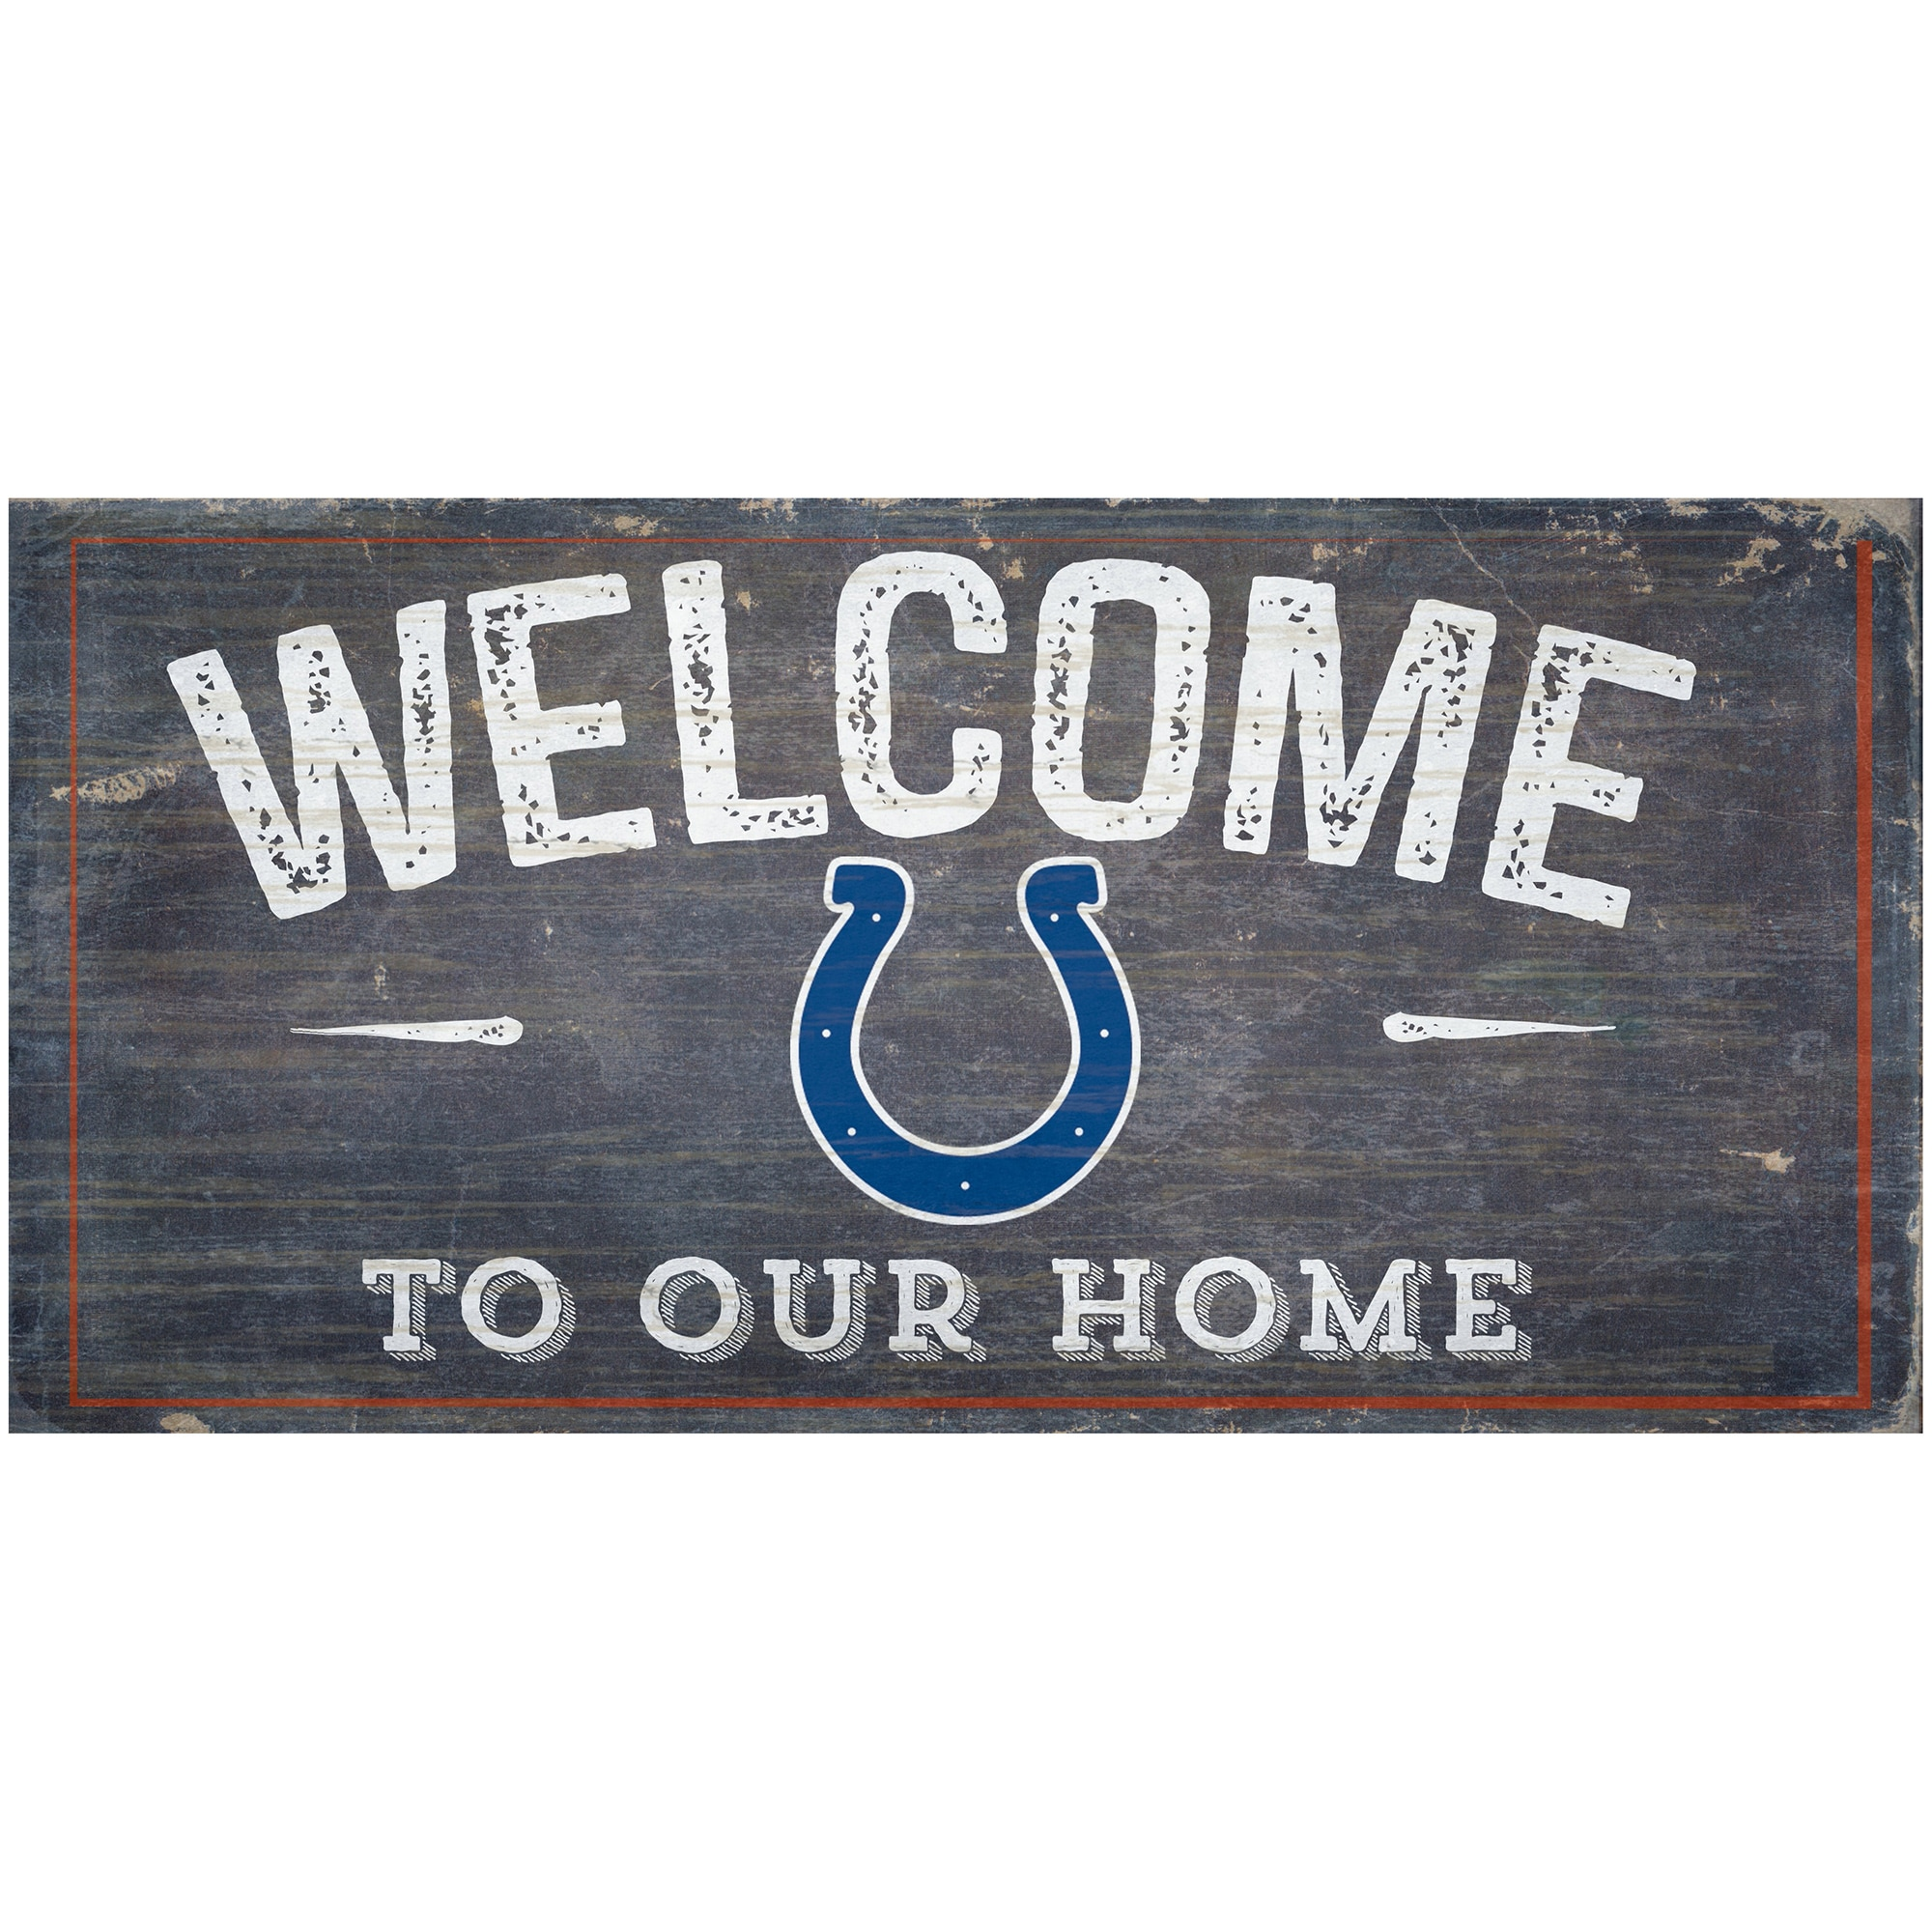 "Indianapolis Colts 6"" x 12"" Welcome To Our Home Sign"